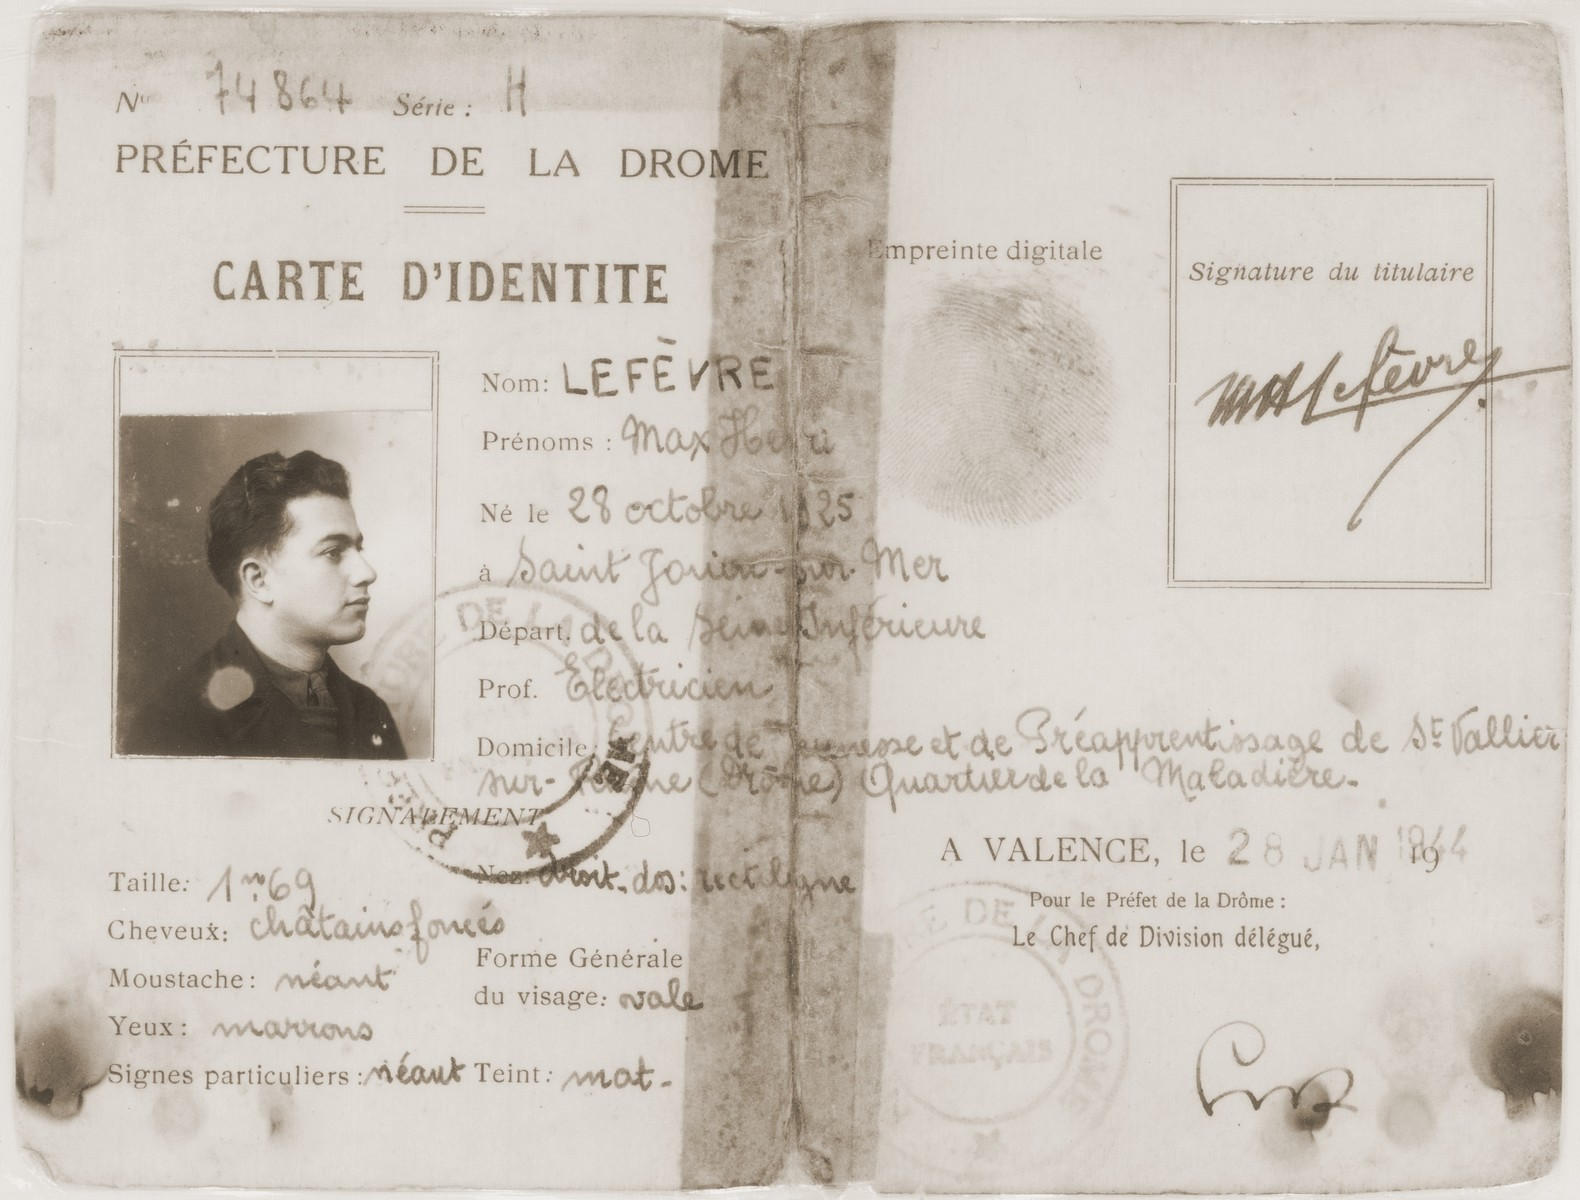 False identification card issued in the name of Max Lefevre that was used by Leo Bretholz while living in hiding in France.